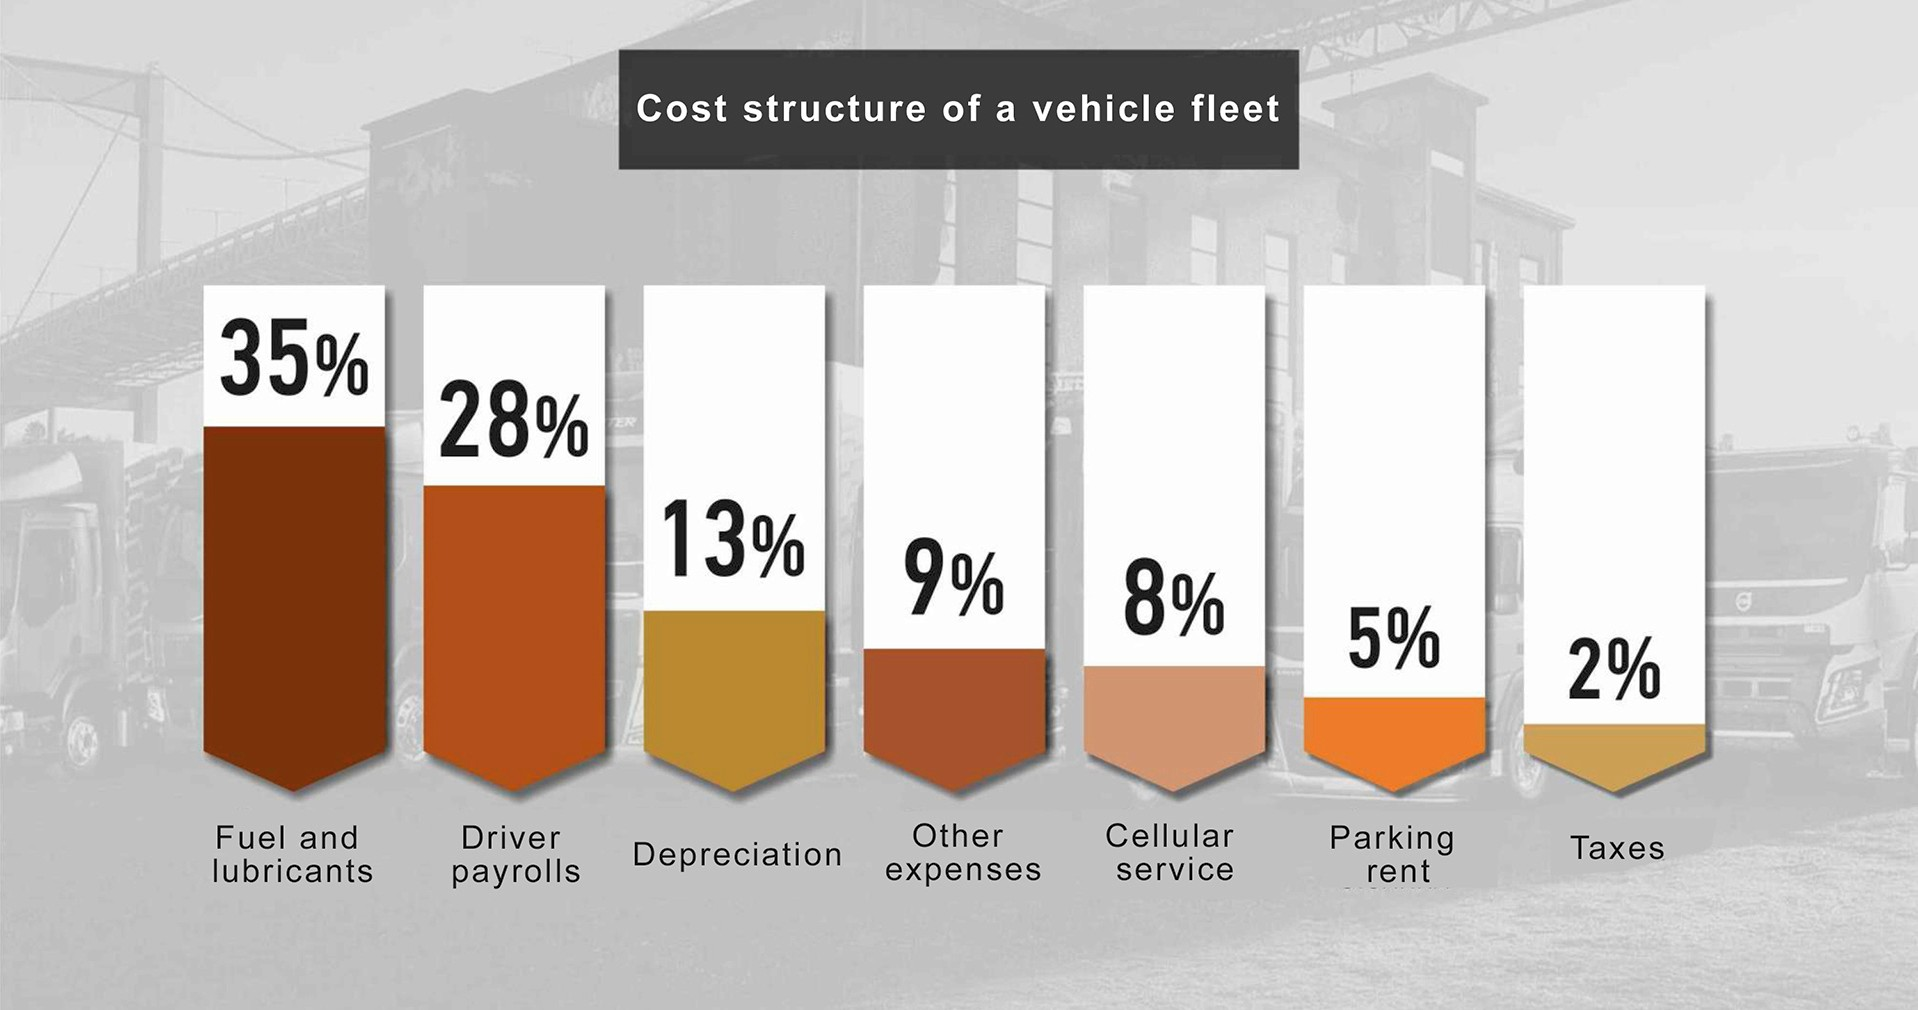 Average cost structure of the vehicle fleet